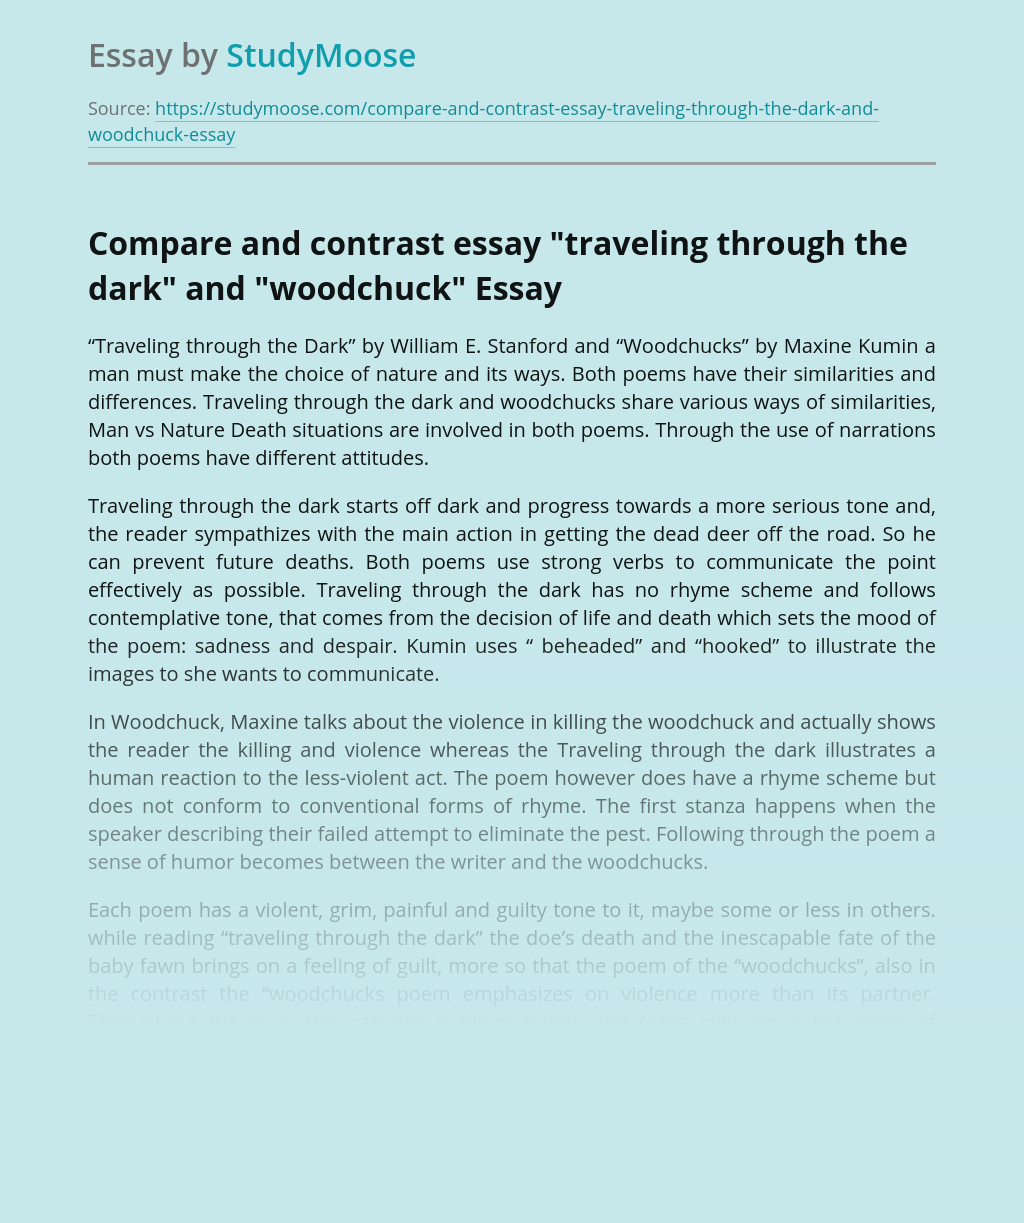 """Compare and contrast essay """"traveling through the dark"""" and """"woodchuck"""""""